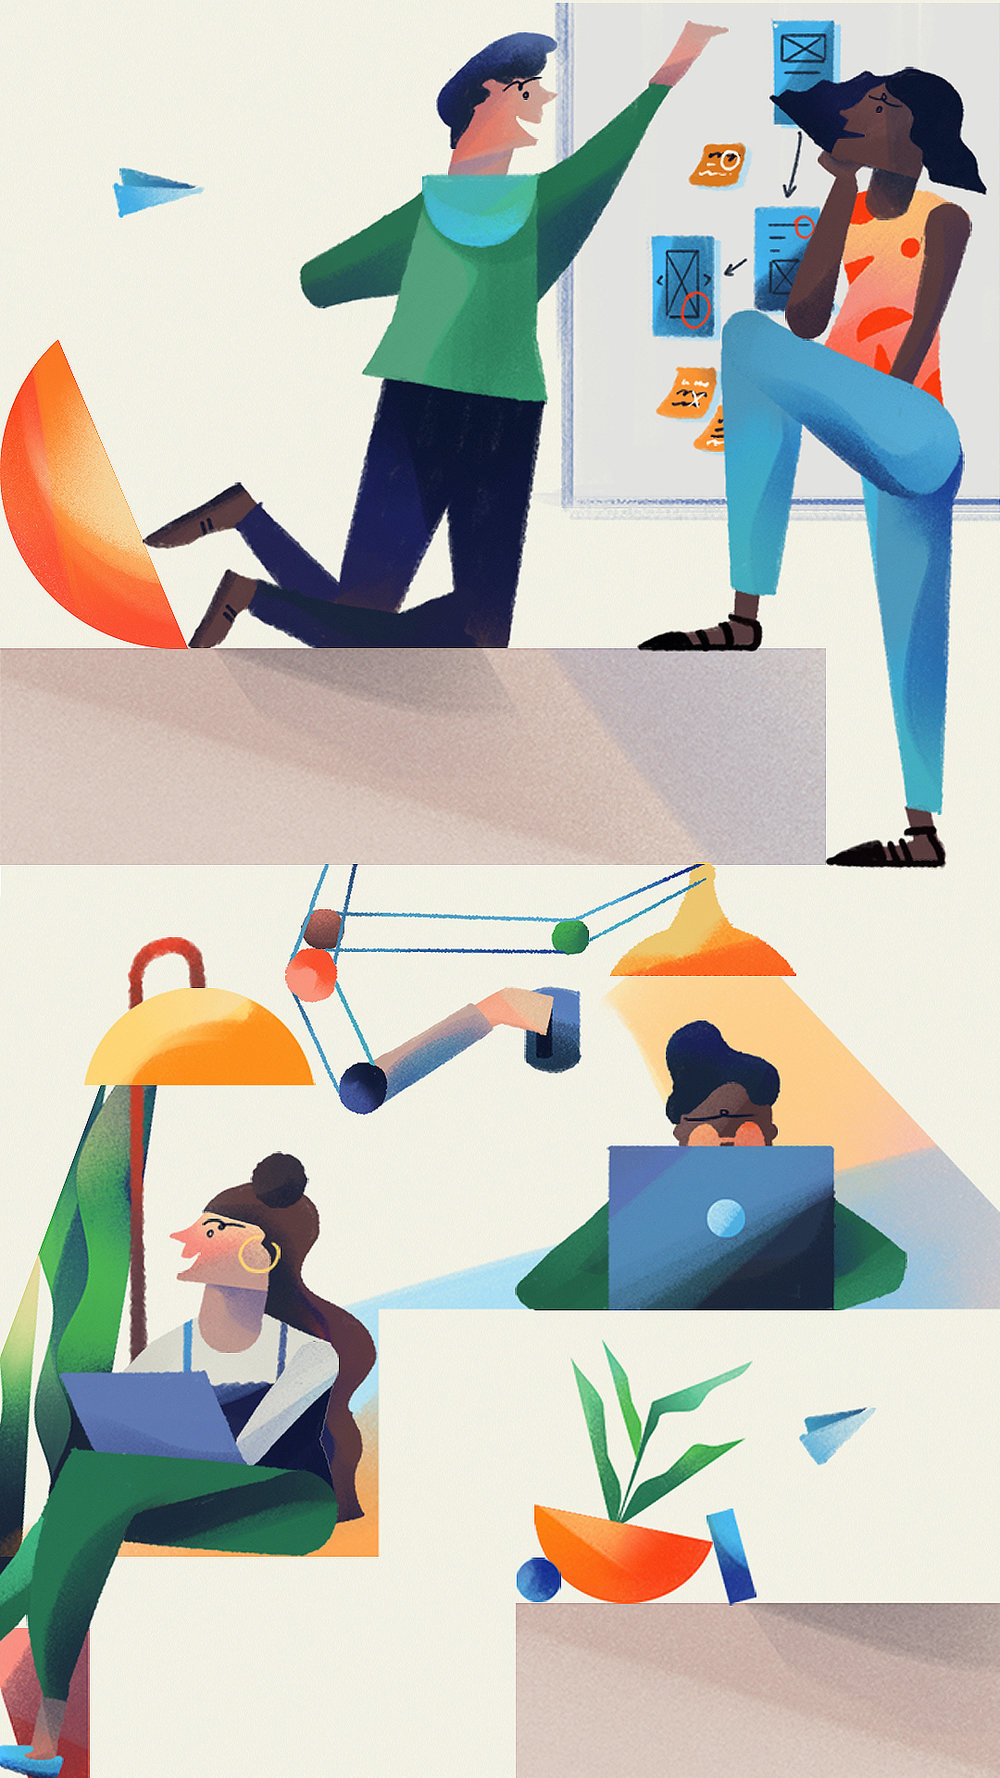 Intercom - An illustration about marrying marketing and product design for Intercom's blog.